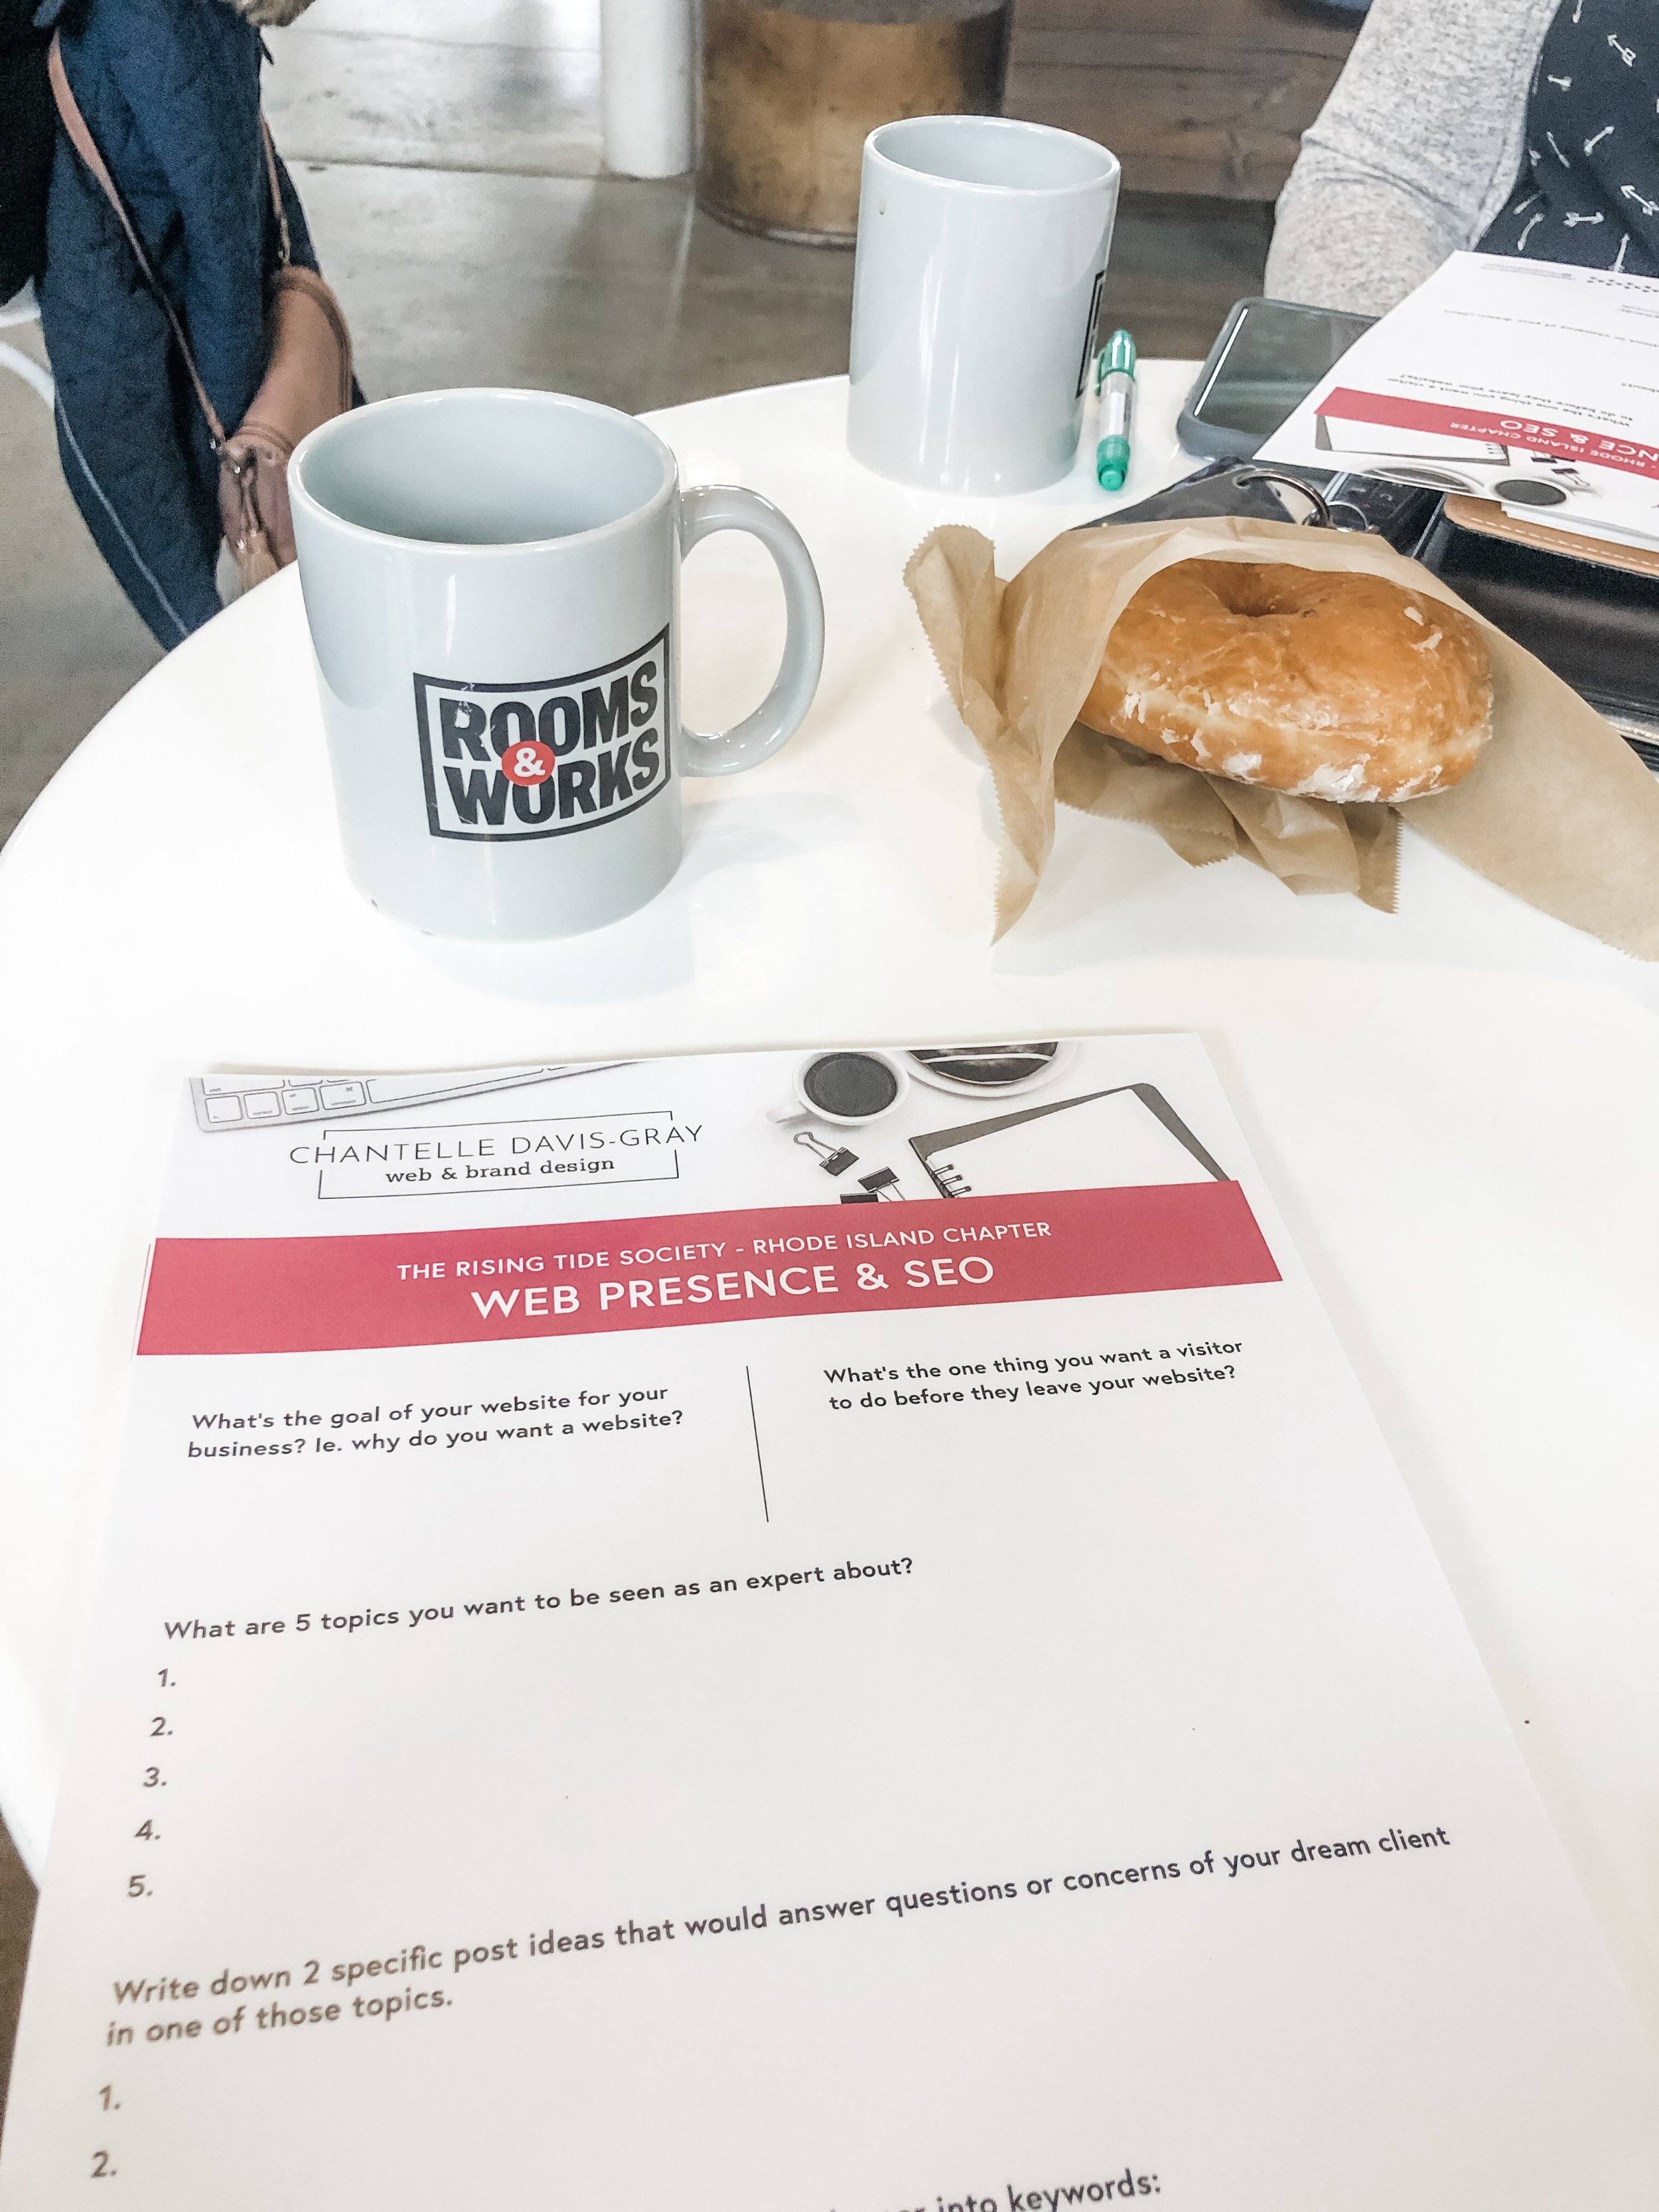 Chantelle's worksheet + coffee + a vegan Knead Doughnut made for a great meet-up!